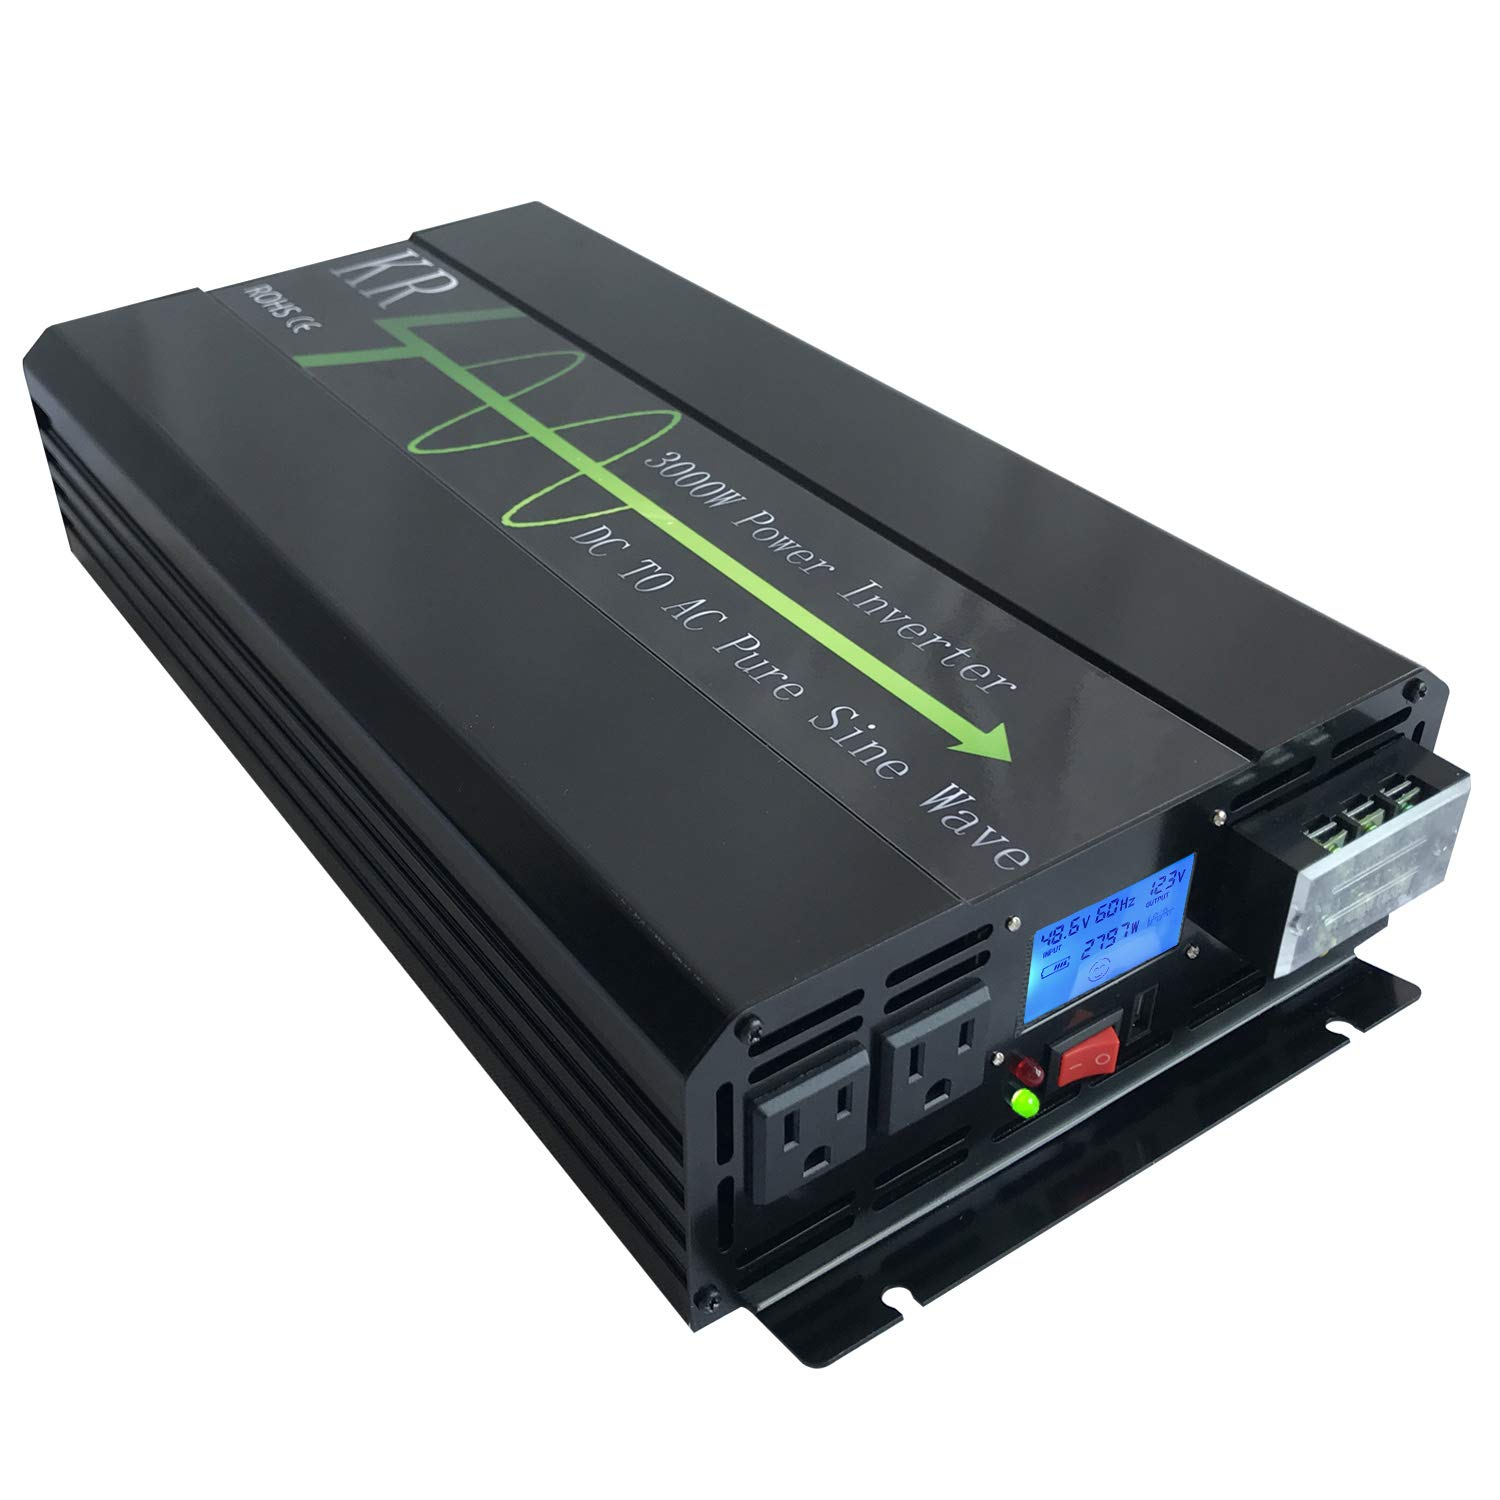 KRXNY 3000W Pure Sine Wave Power Inverter Peak 6000W 48V DC to 110V 120V AC 60HZ for Car RV Use or Home Solar System with LCD Display